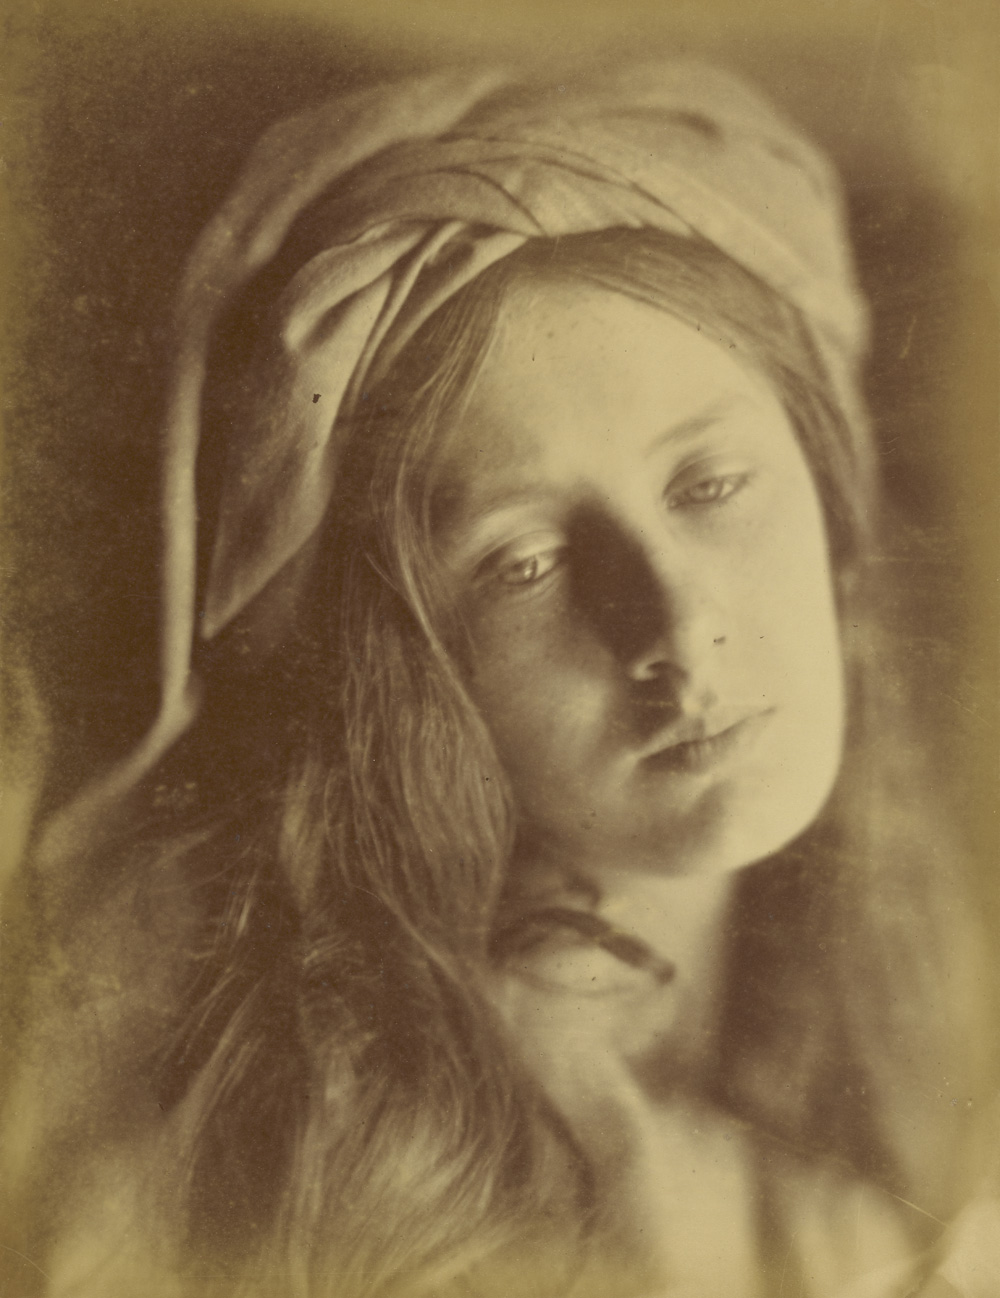 Julia Margaret Cameron (British, born India, 1815 - 1879)  Beatrice , 1866, Albumen silver print 33.8 x 26.4 cm (13 5/16 x 10 3/8 in.) The J. Paul Getty Museum, Los Angeles